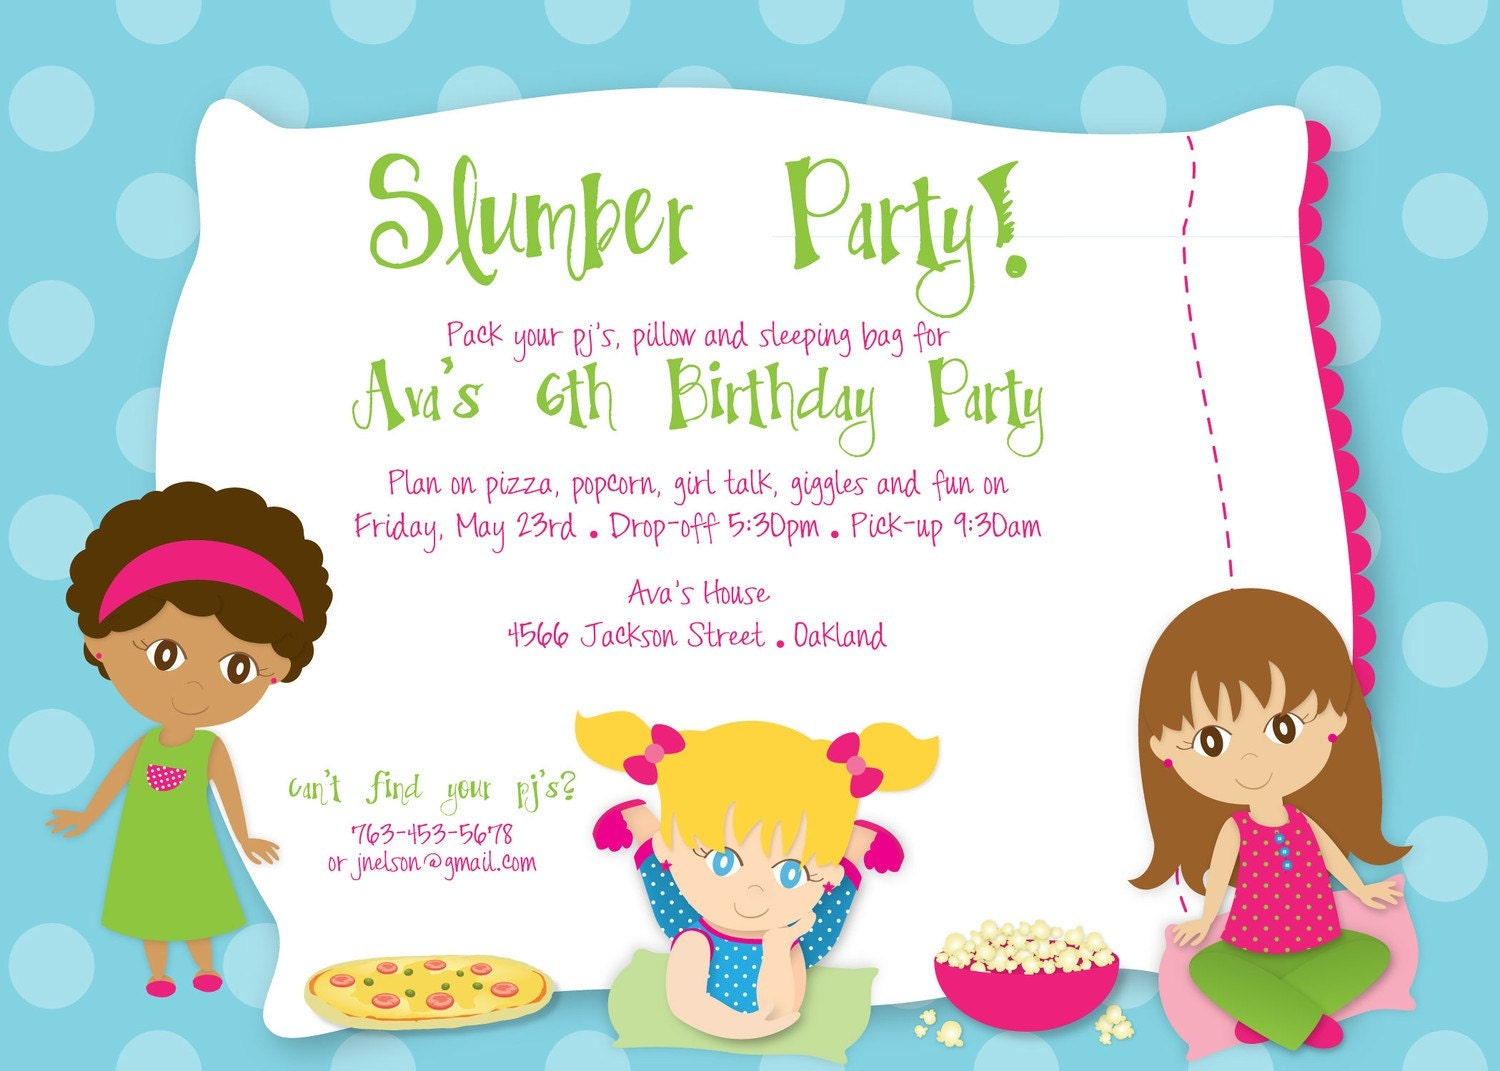 Slumber Party Birthday Custom DIGITAL by KimNelsonCreative